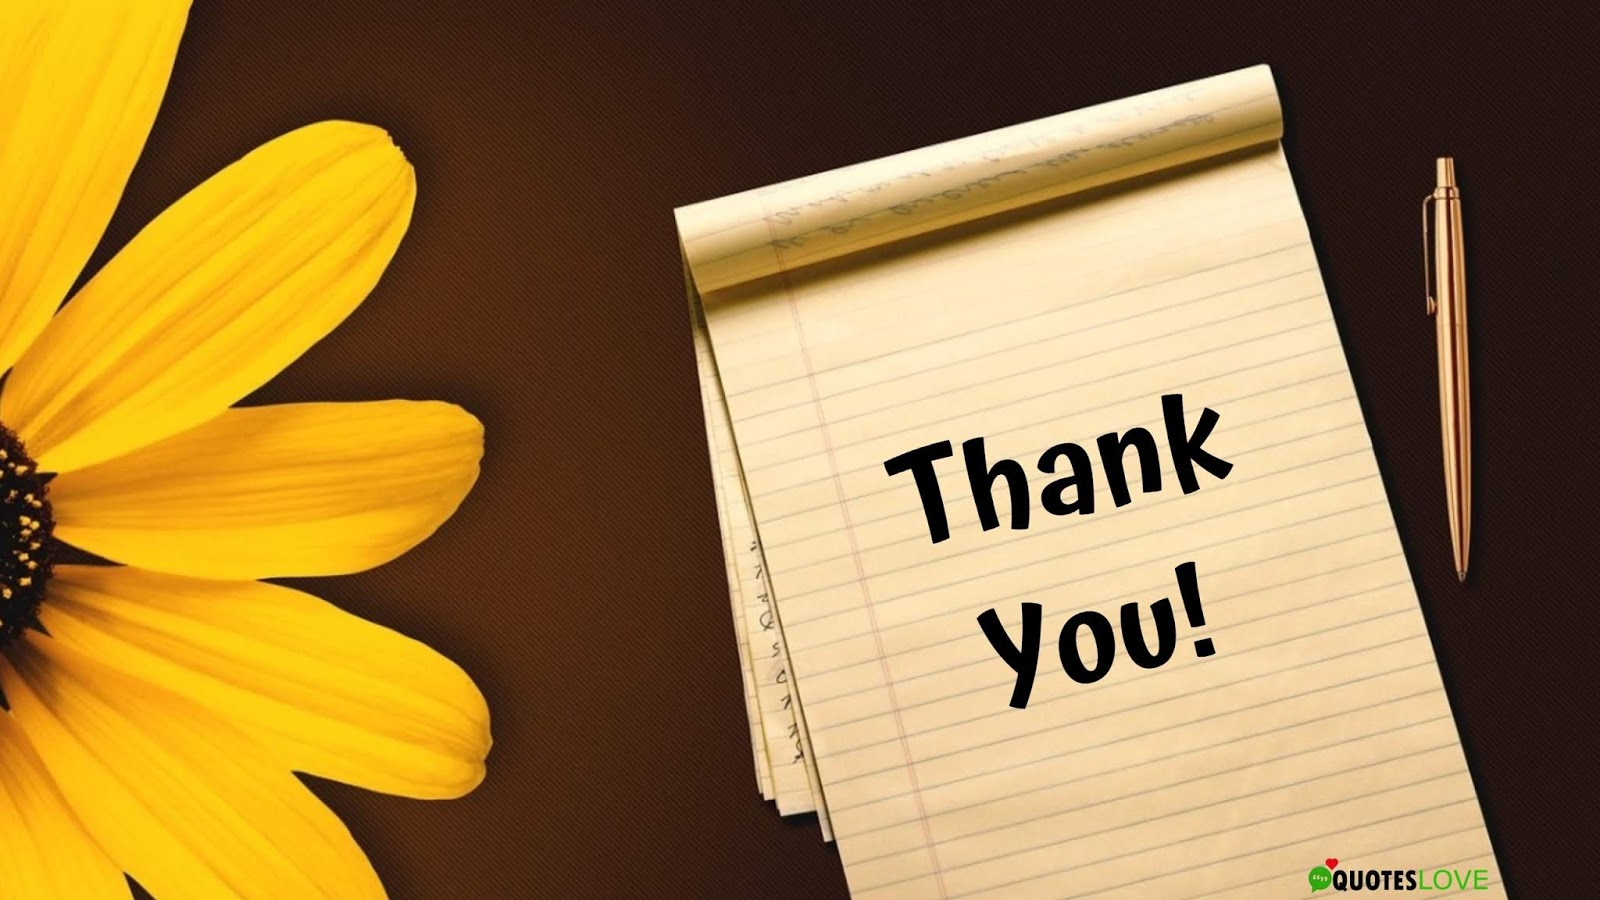 41+ (Best) Inspirational Quotes For Employee Appreciation Sayings To Thank Them